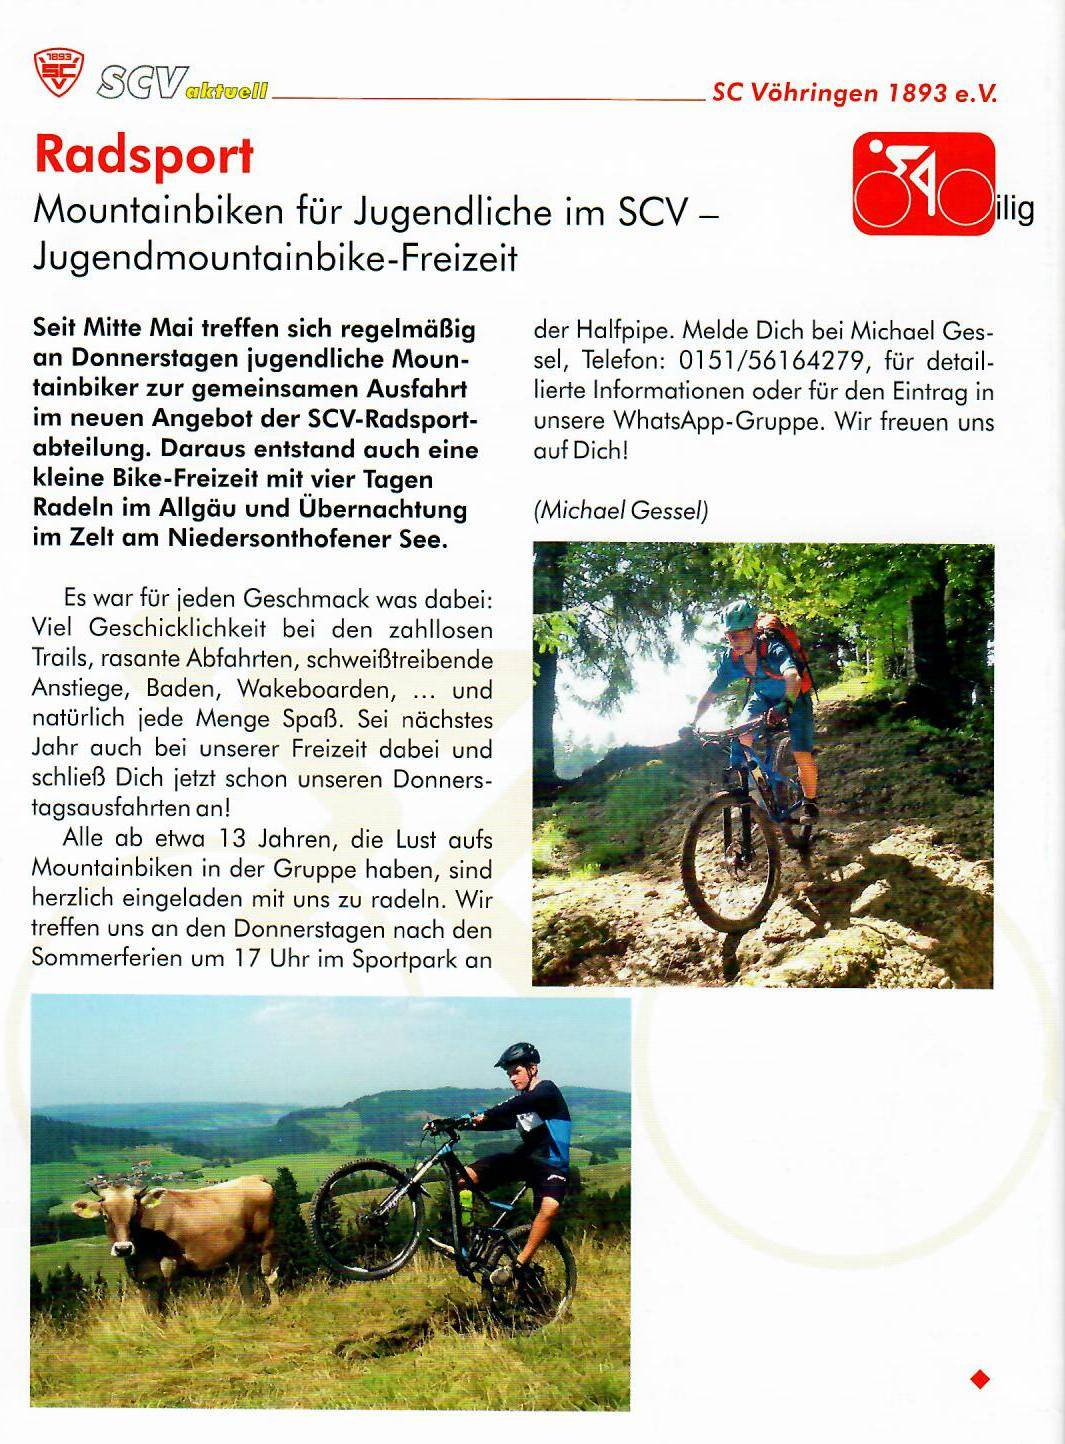 170901_Mountainbiken_1